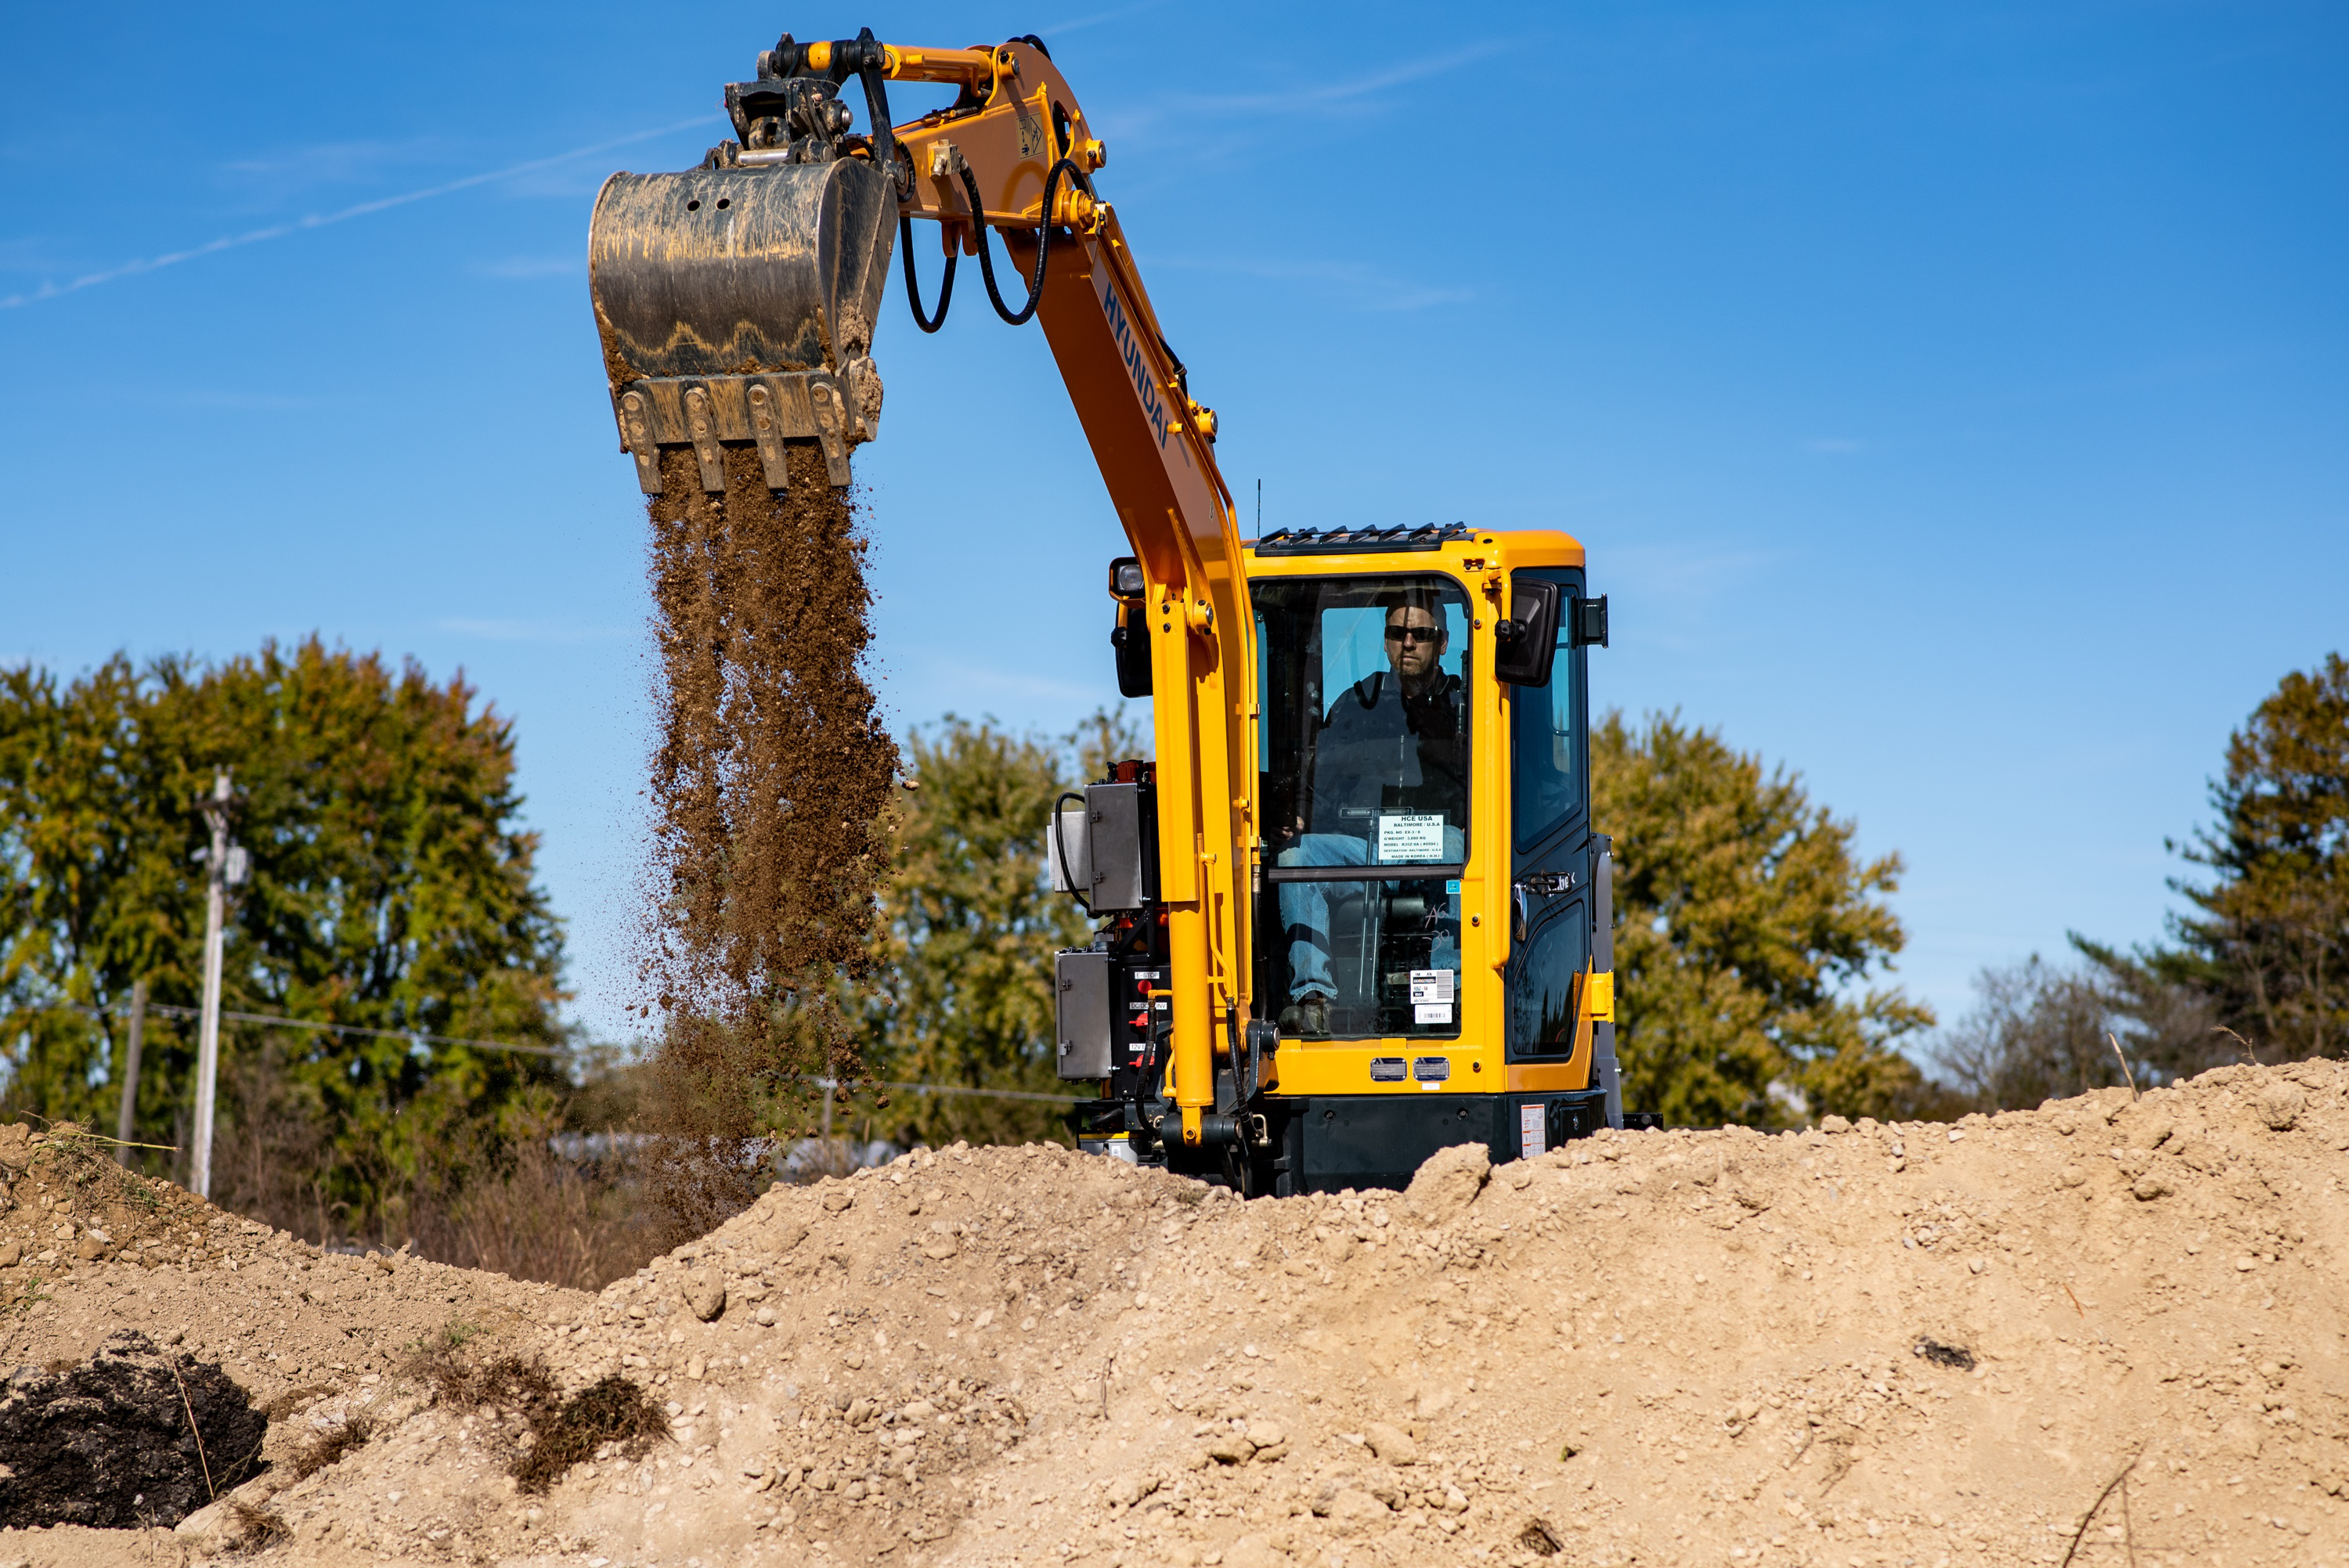 Cummins & Hyundai co-develop electric mini excavator